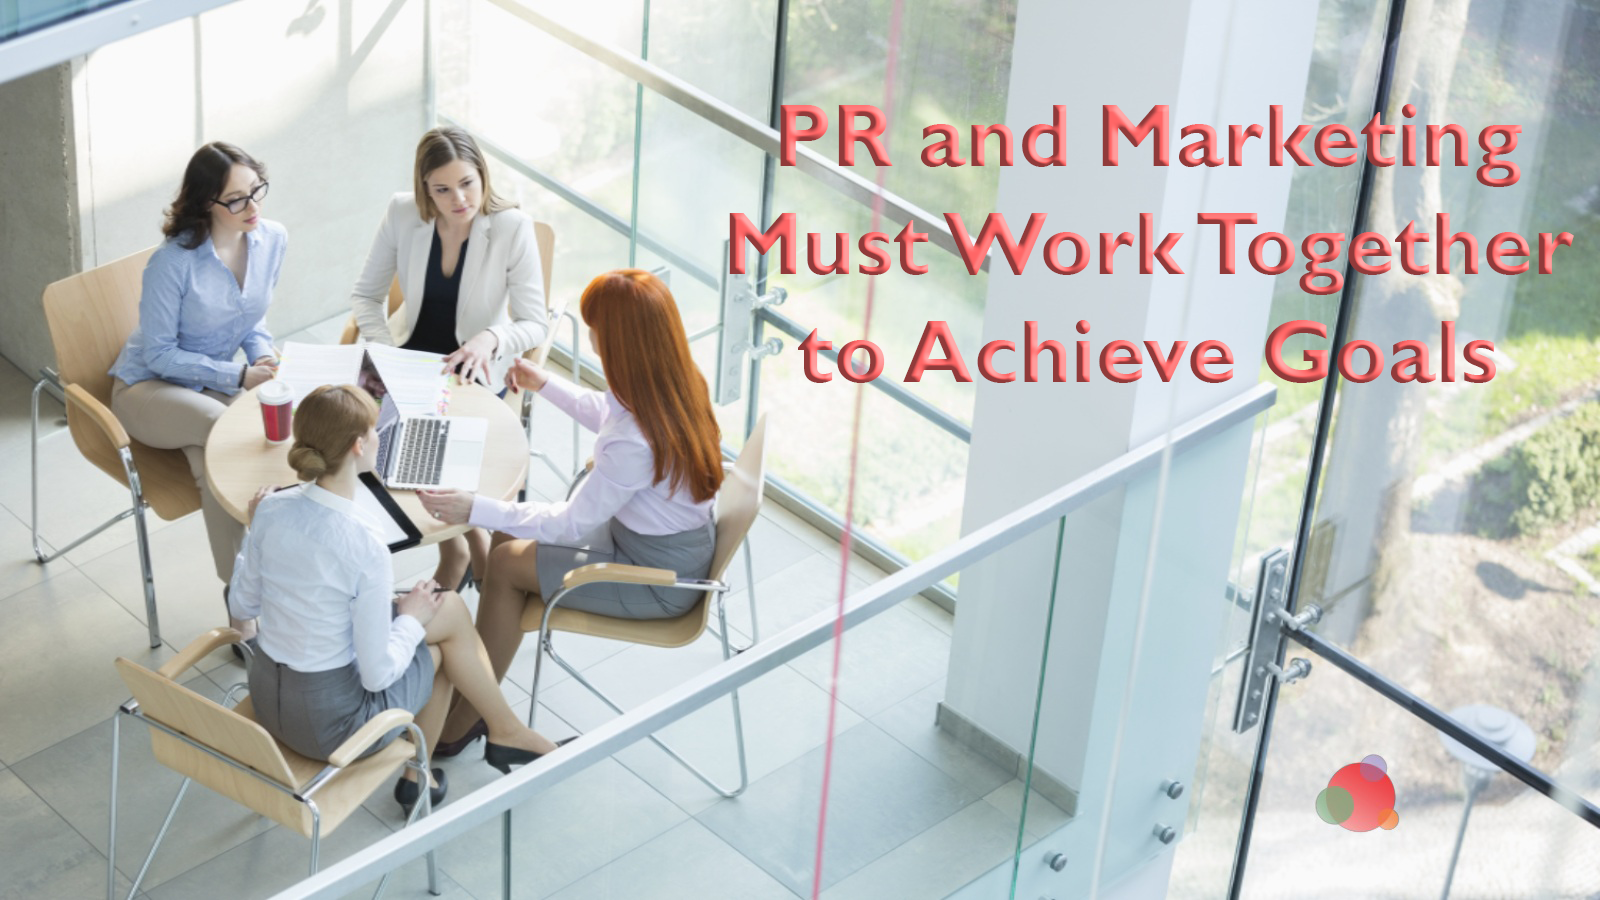 Why PR and Marketing Must Work Together for Better Results